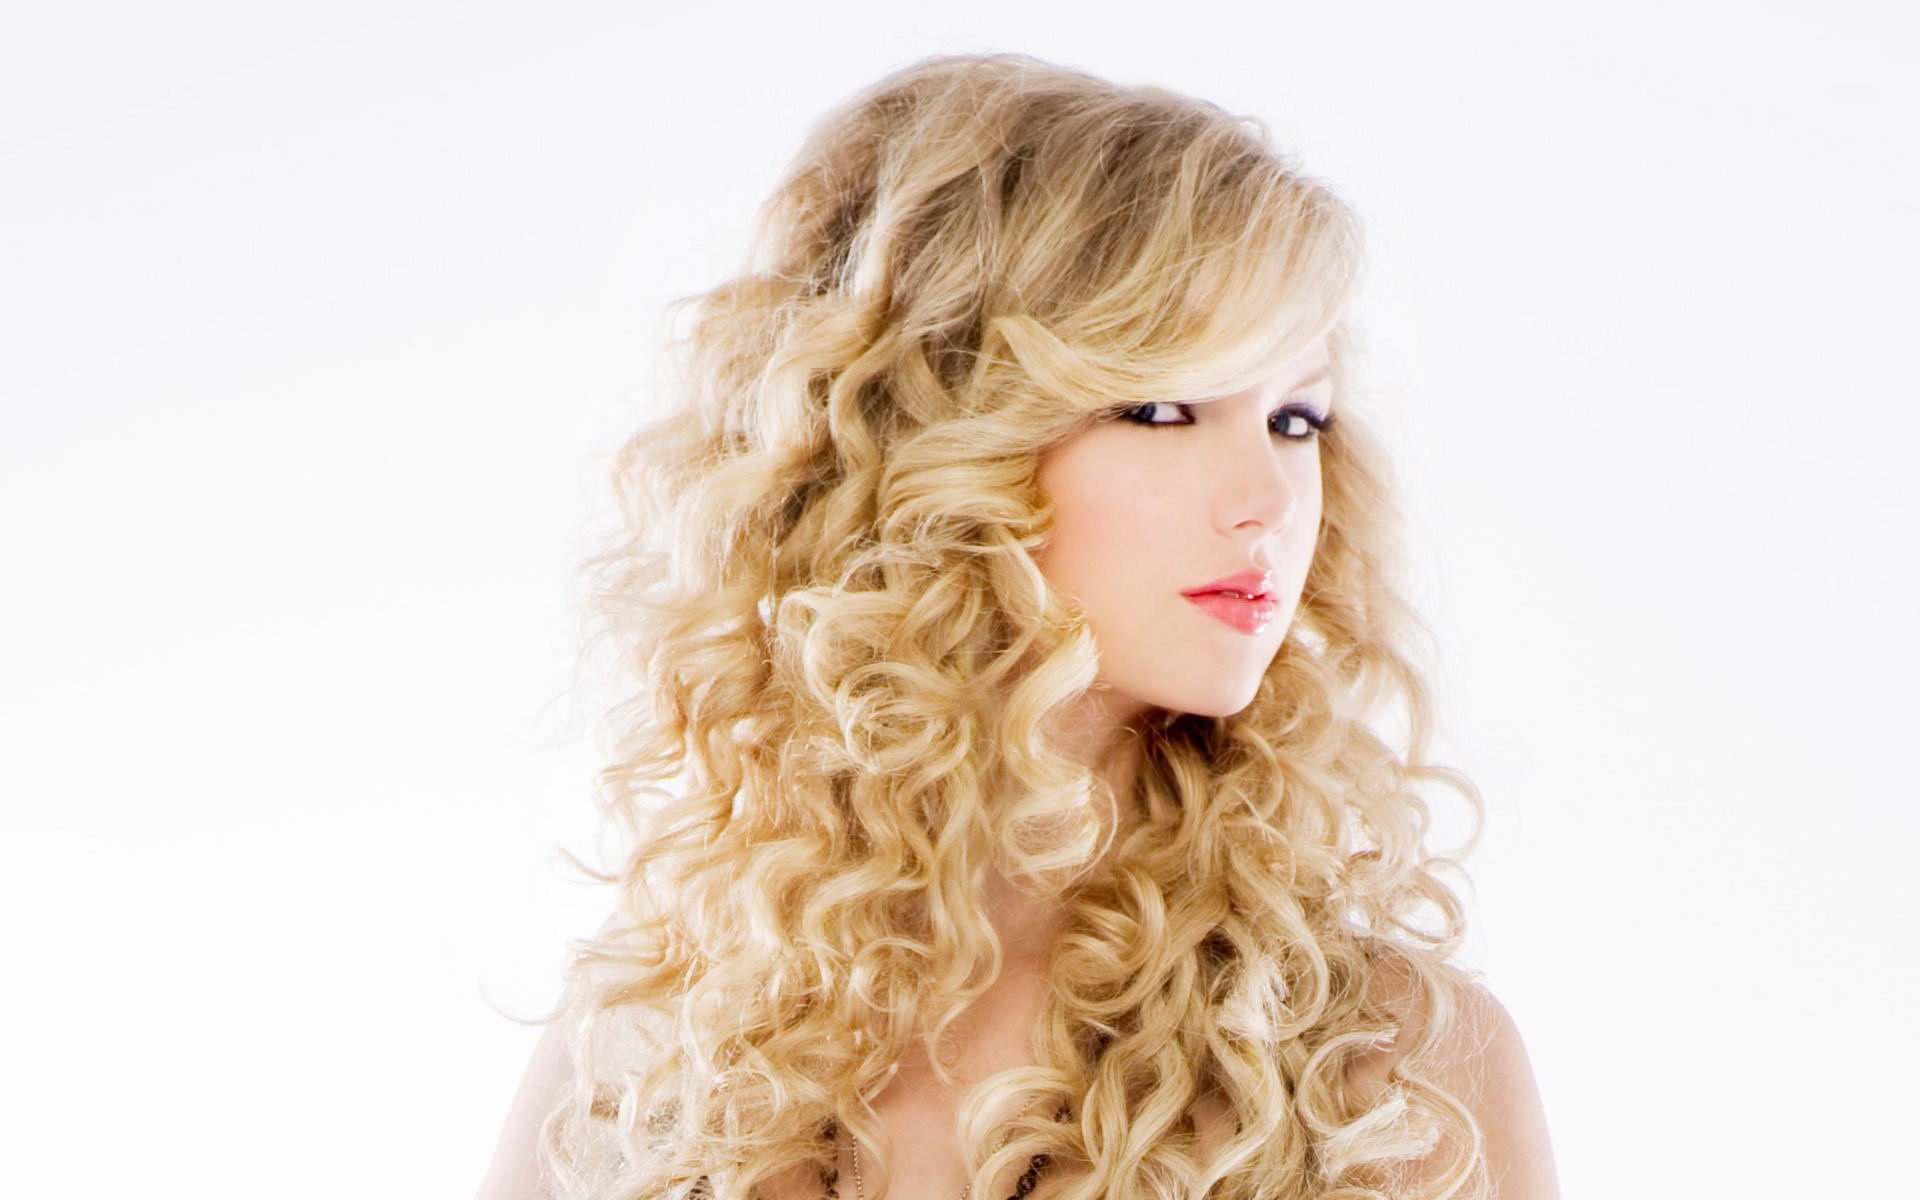 taylor swift hair wallpaper high definition high